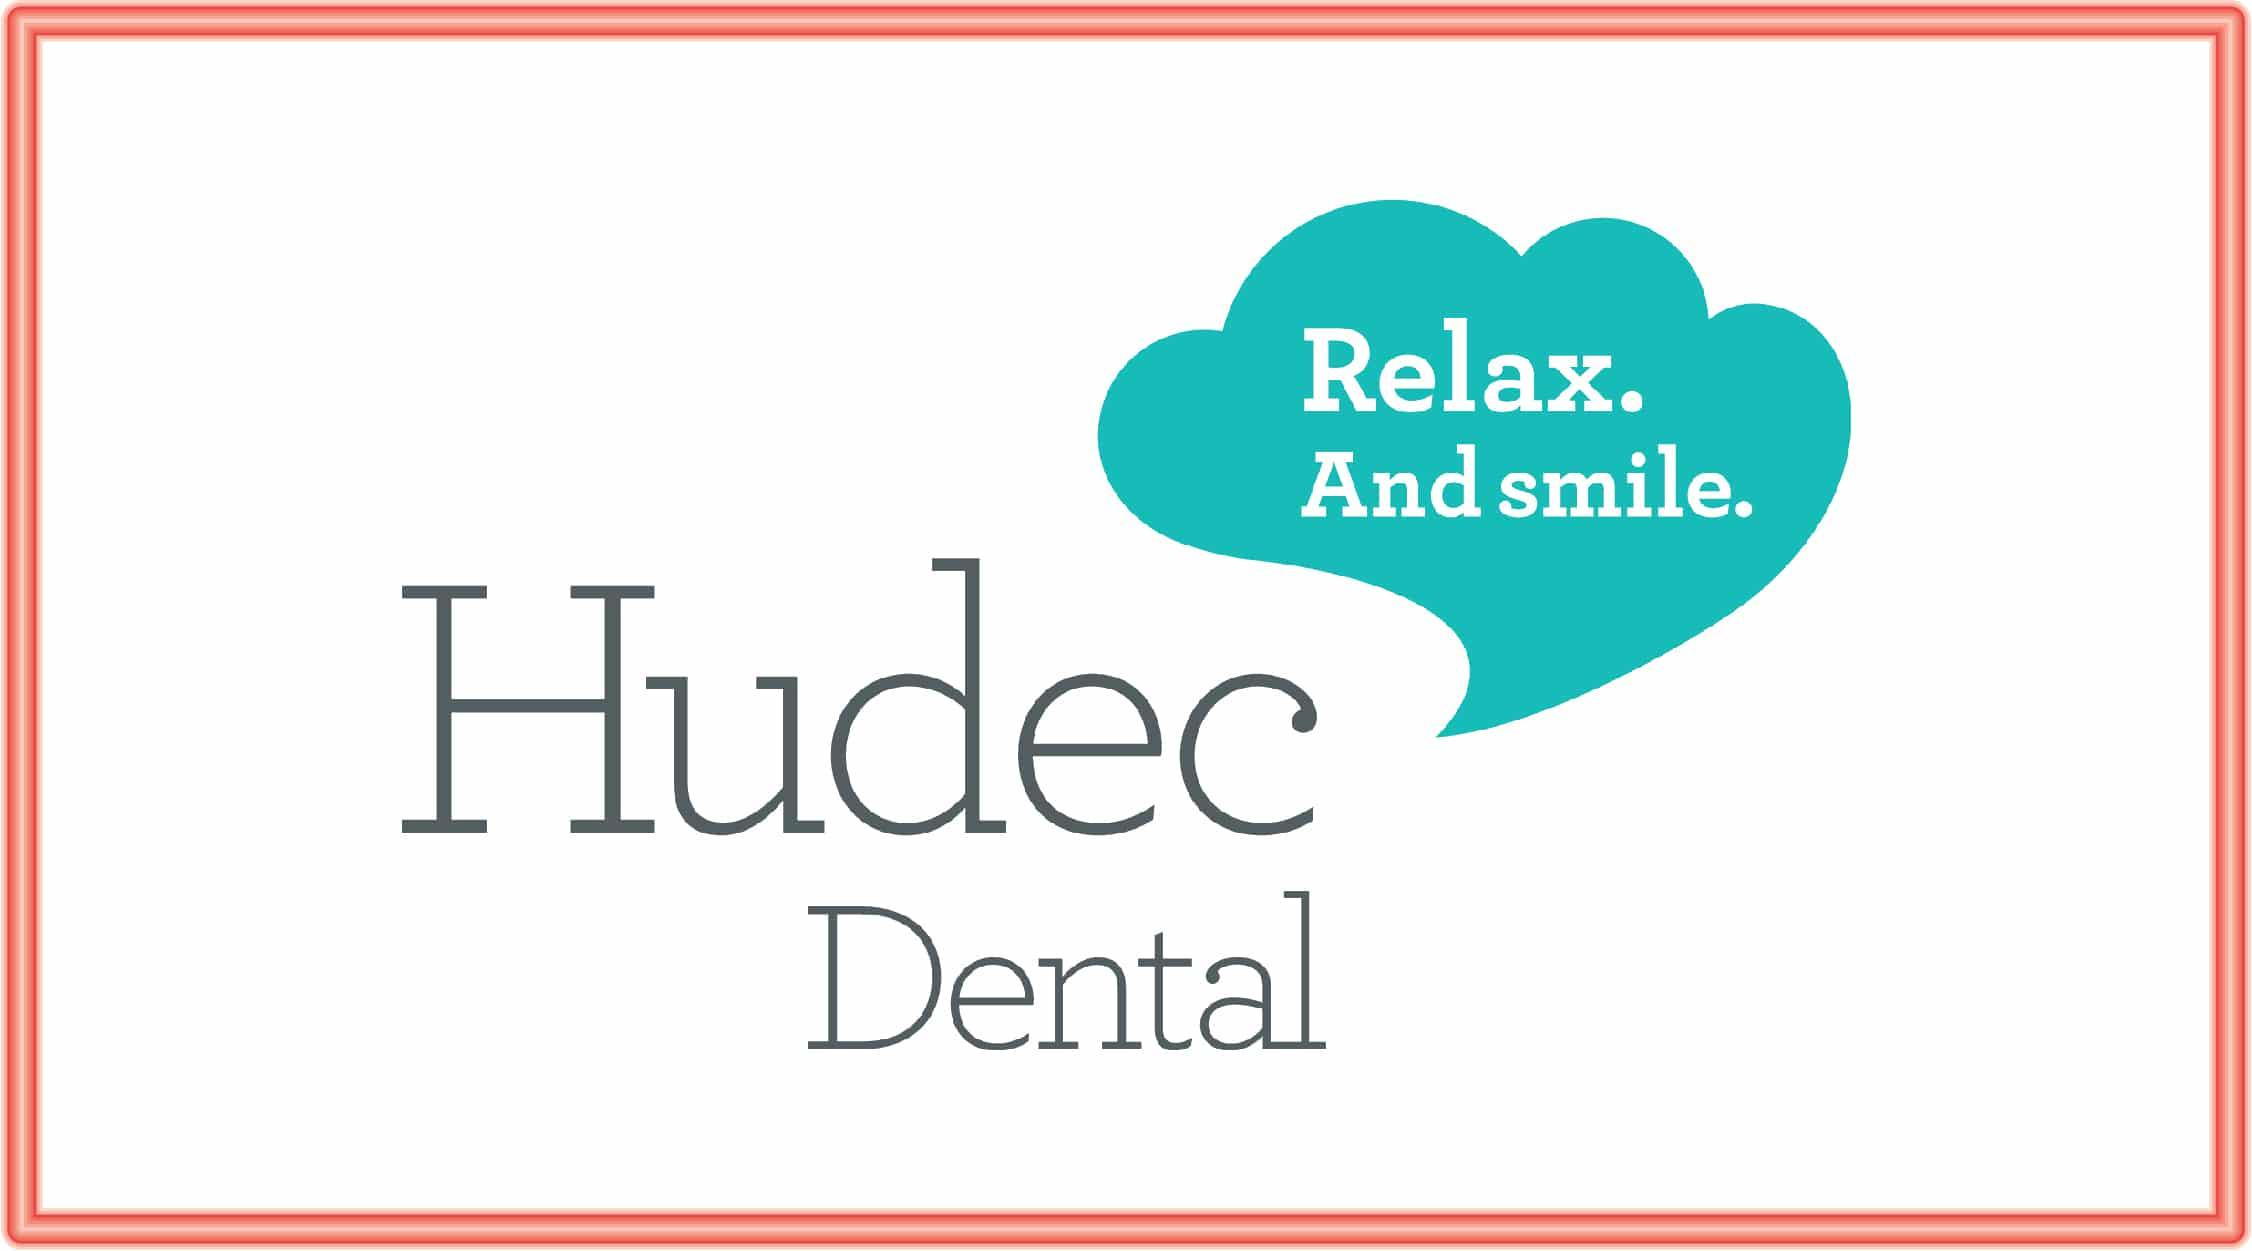 Hudec Dental